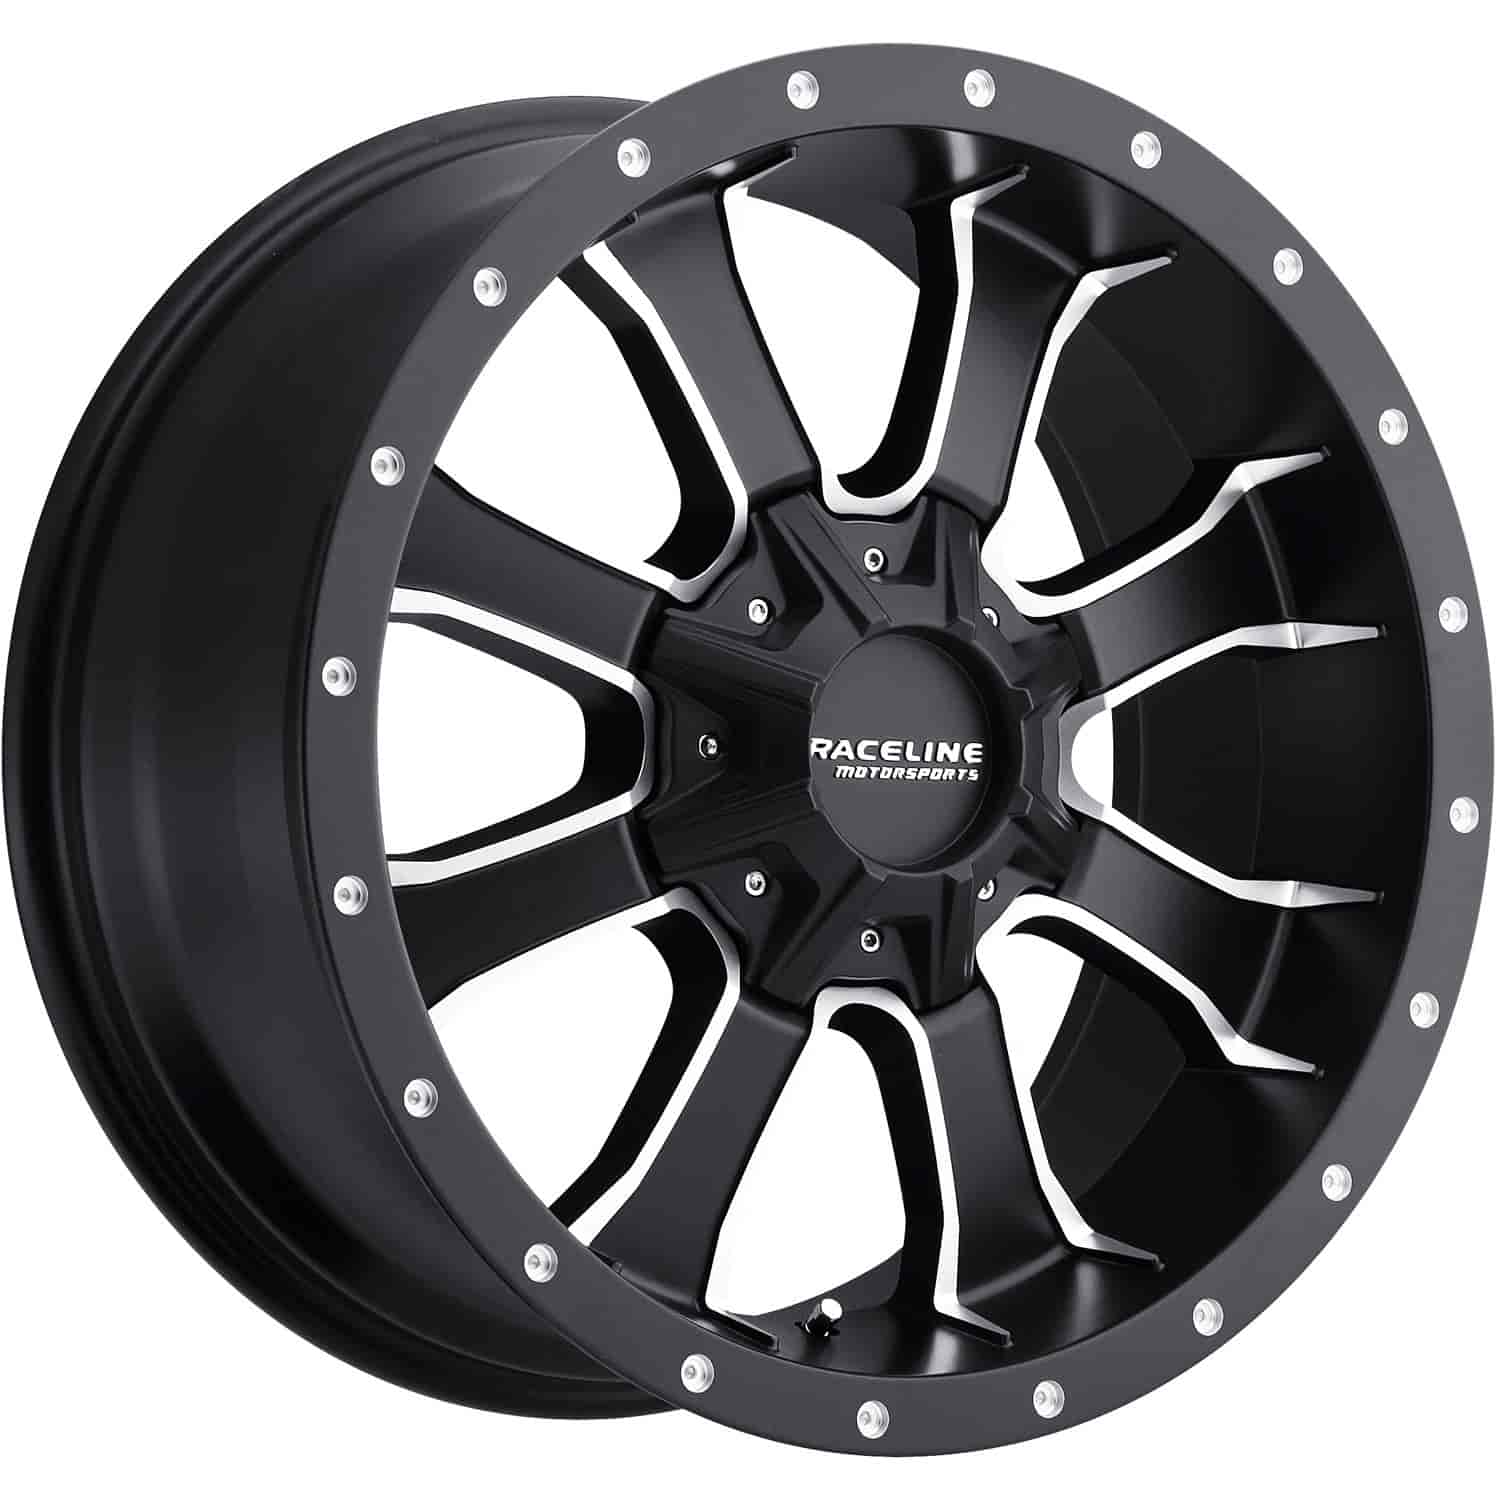 Raceline Wheels 927M-8909400